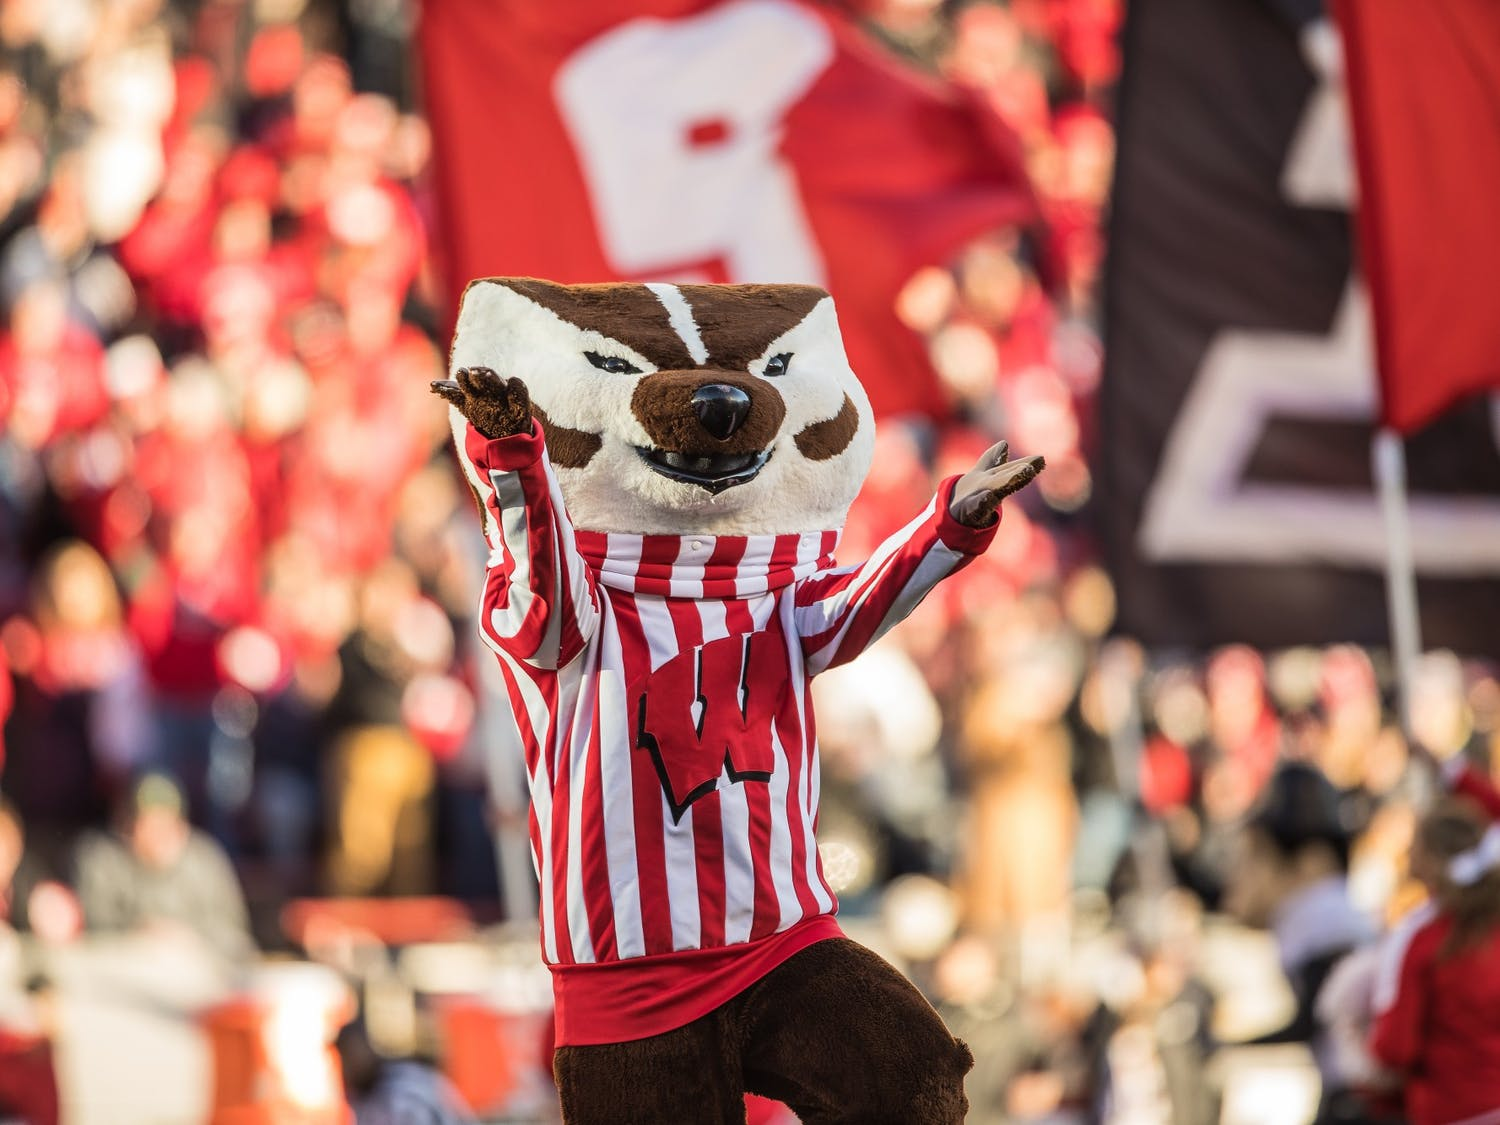 As much as we'd all love to see Bucky back on the field in the fall, it probably isn't safe.